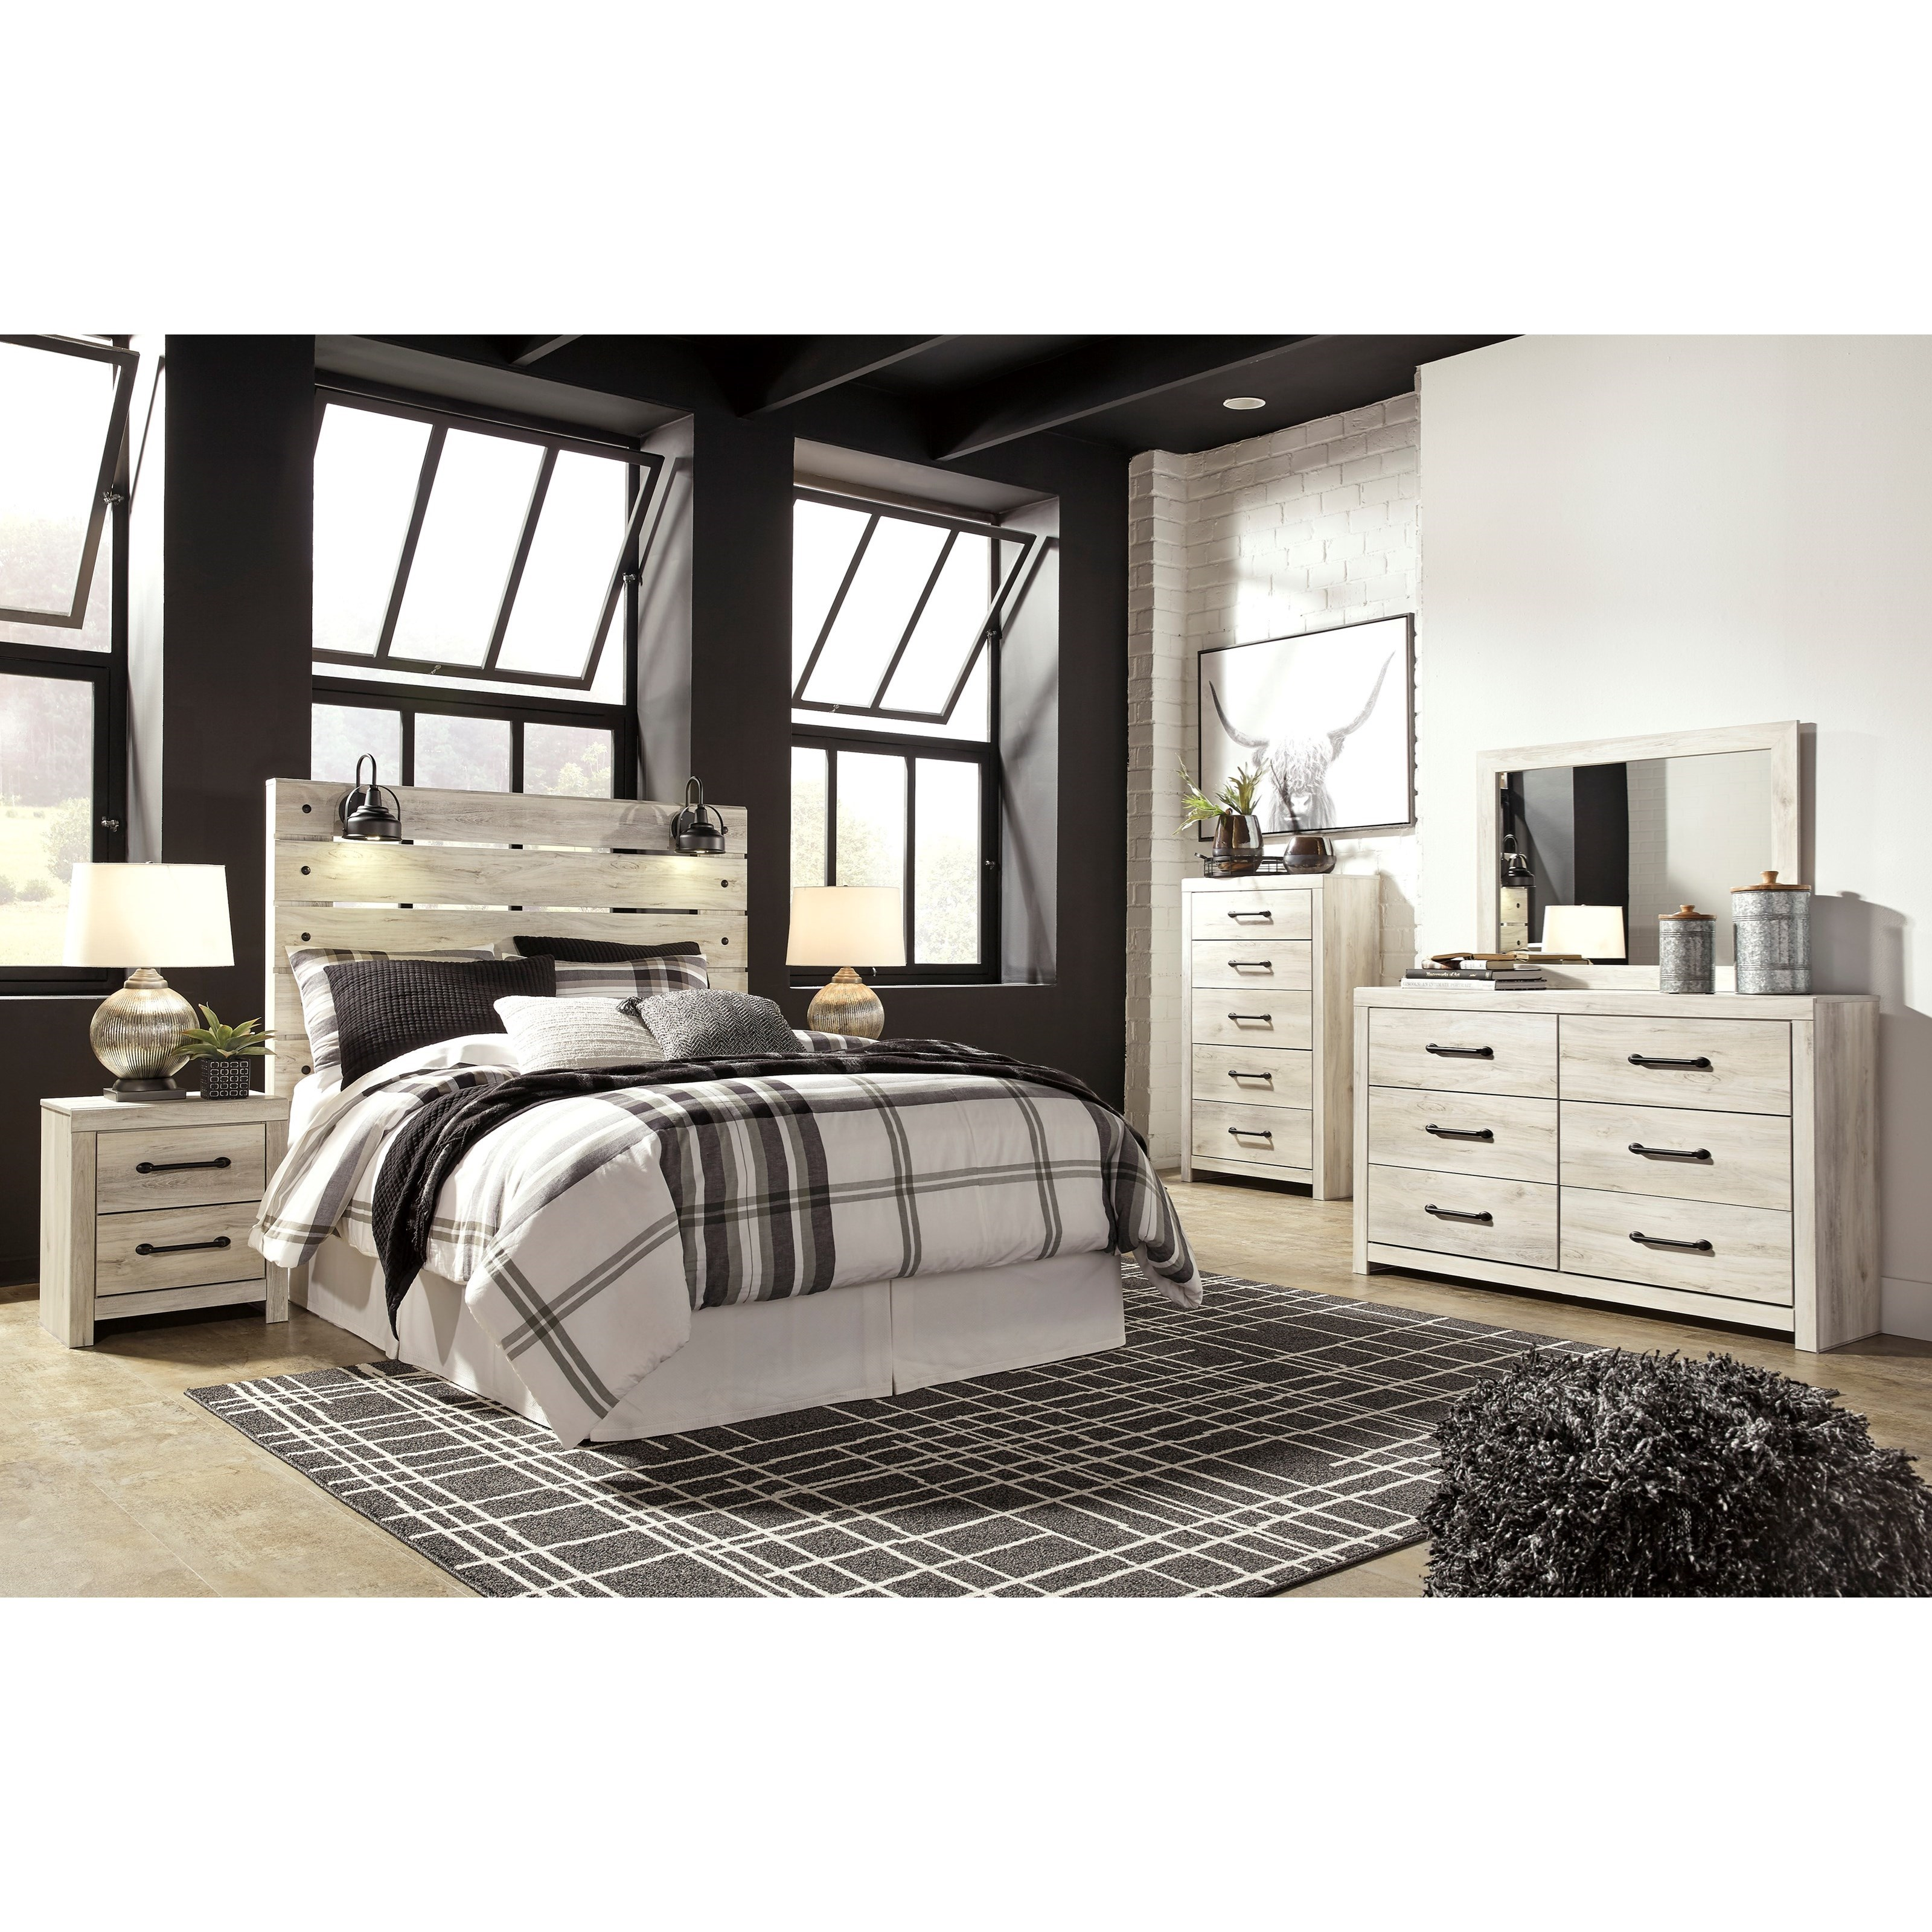 Signature Home Furnishings: Signature Design By Ashley Cambeck Rustic Queen Panel